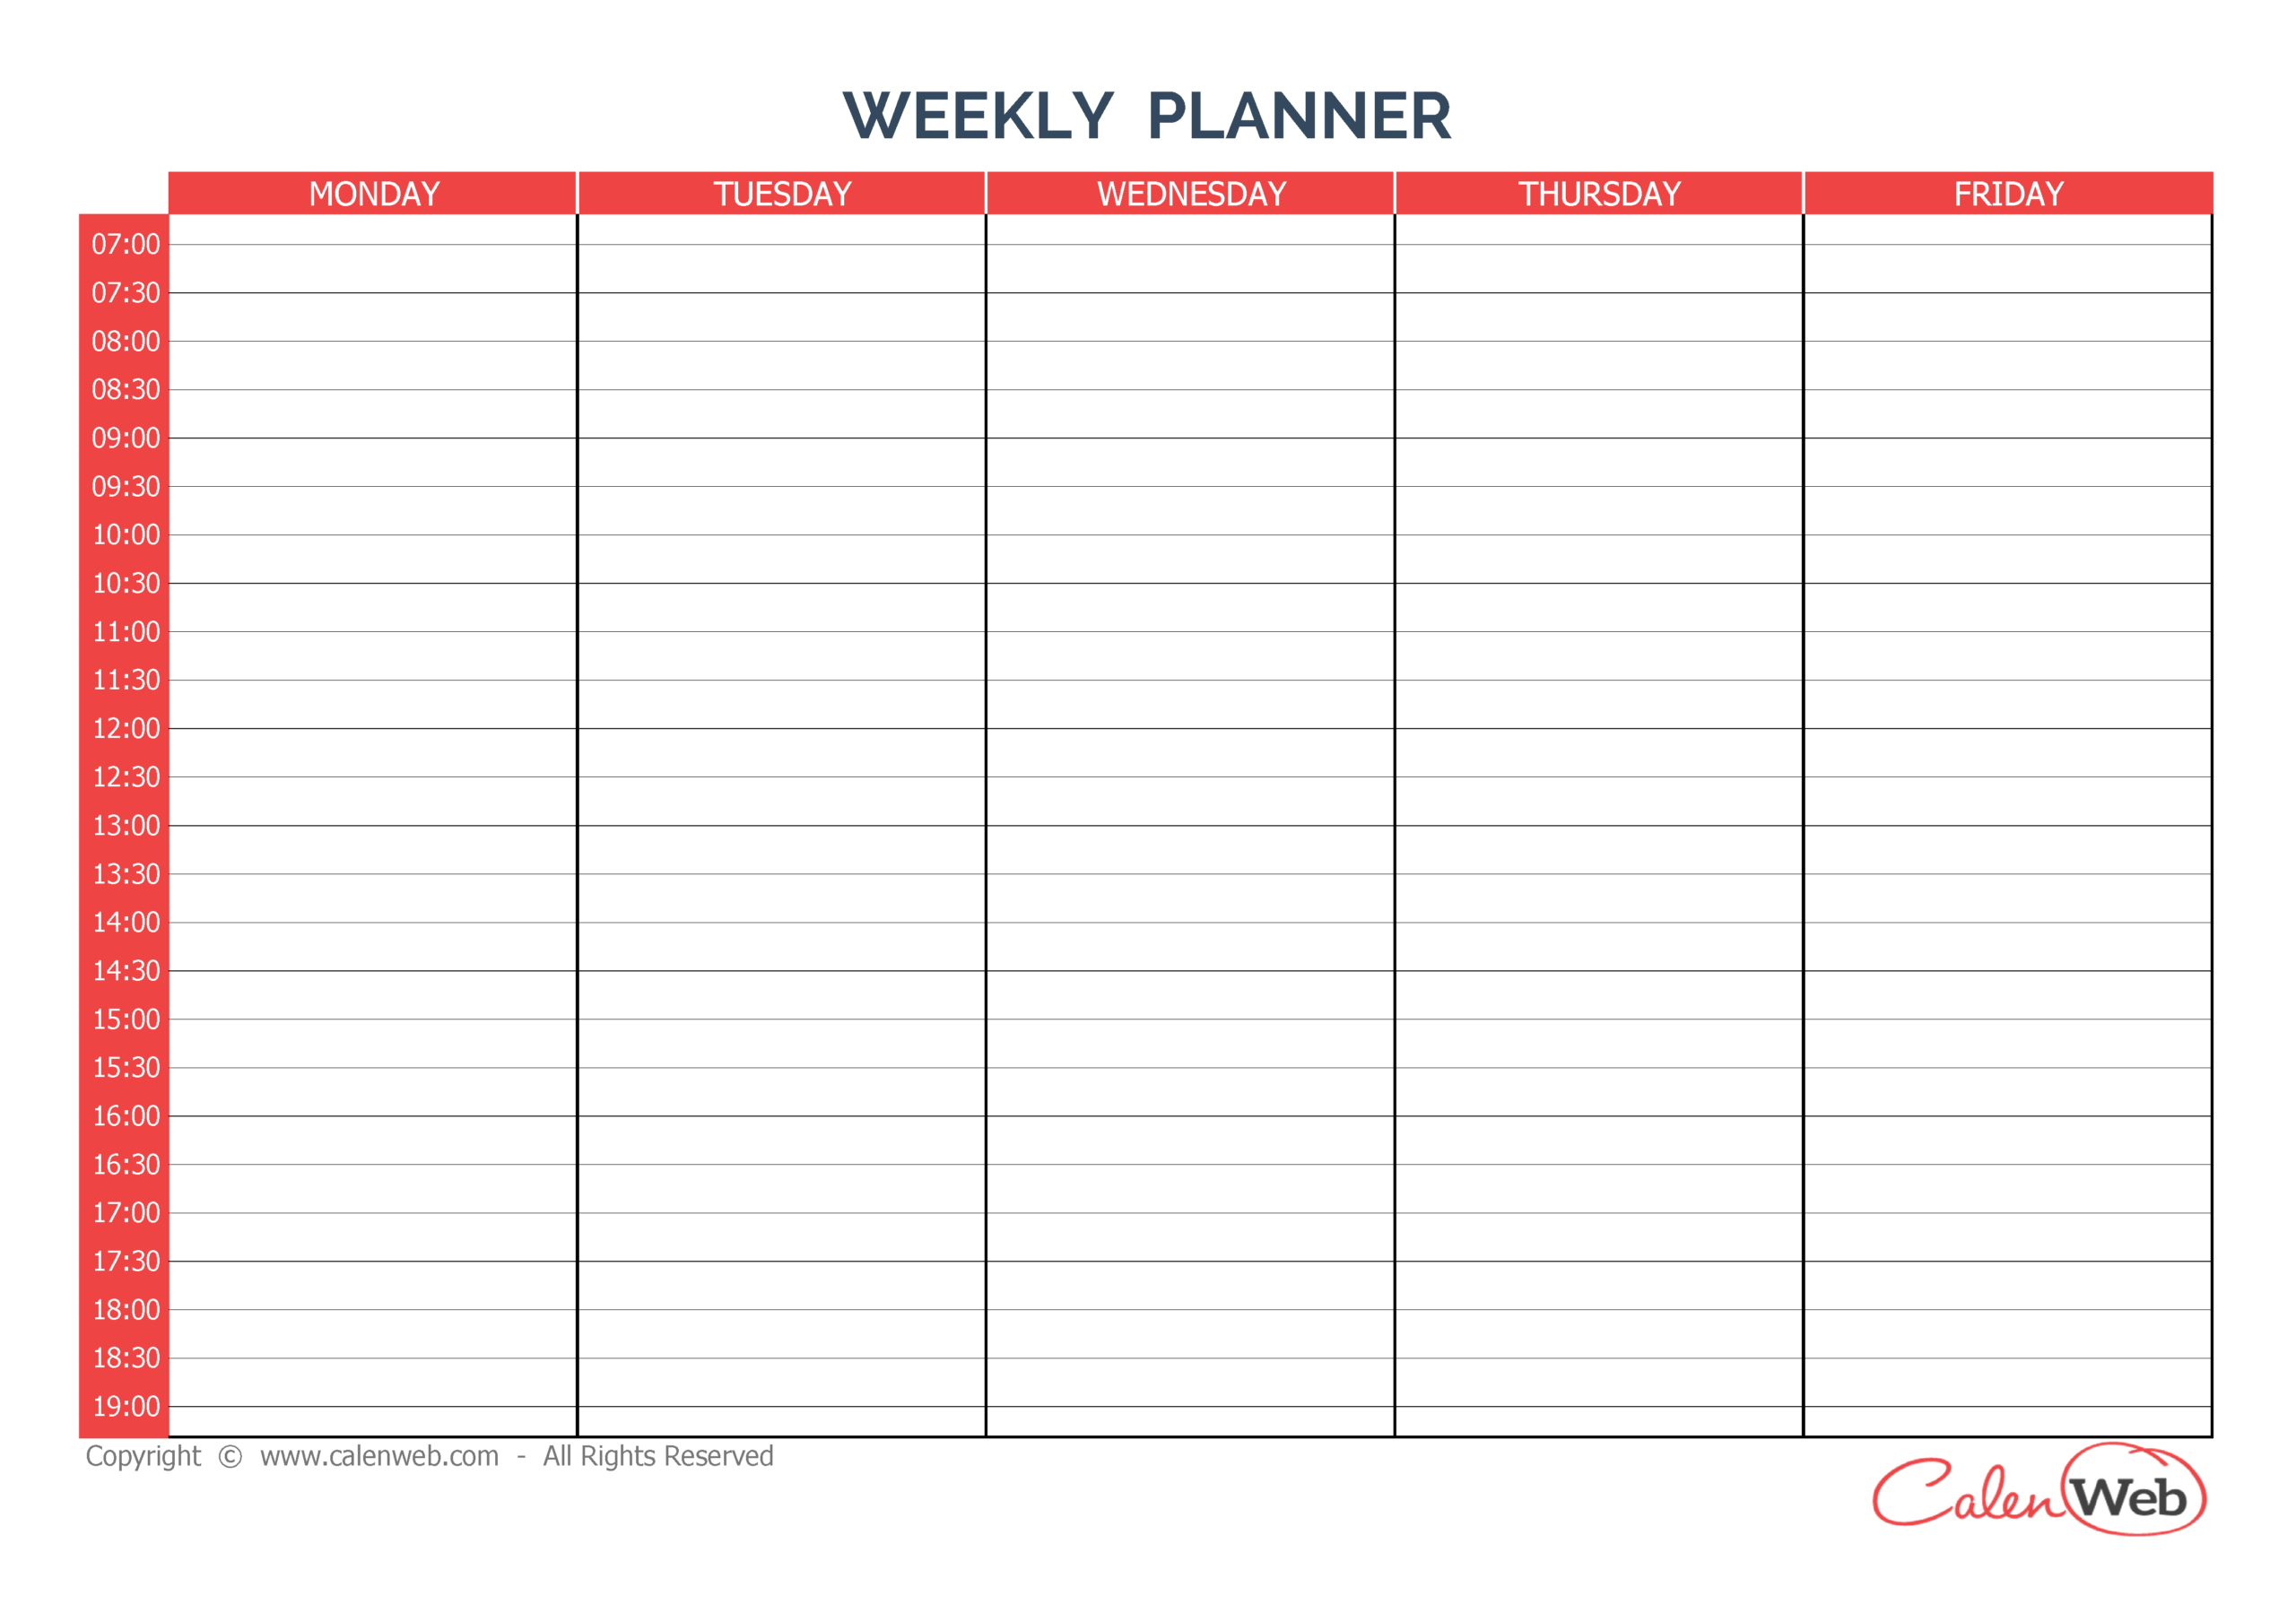 Weekly Planner 5 Days A Week Of 5 Days  Calenweb in Monday To Friday Calendar